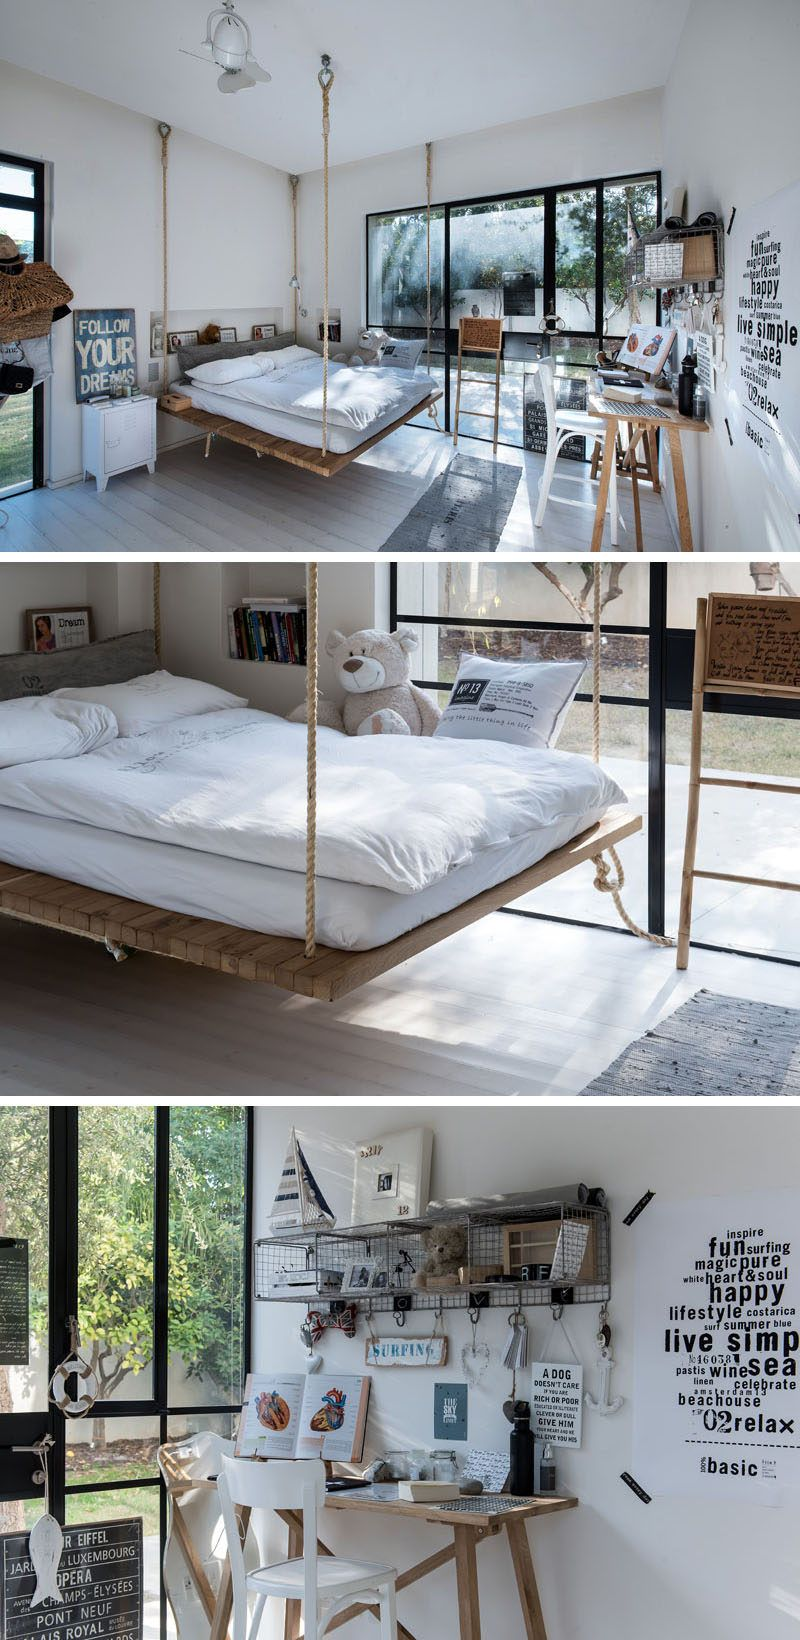 This Teenageru0027s Bedrooms Has A Bed That Is Suspended From The Ceiling Usingu2026